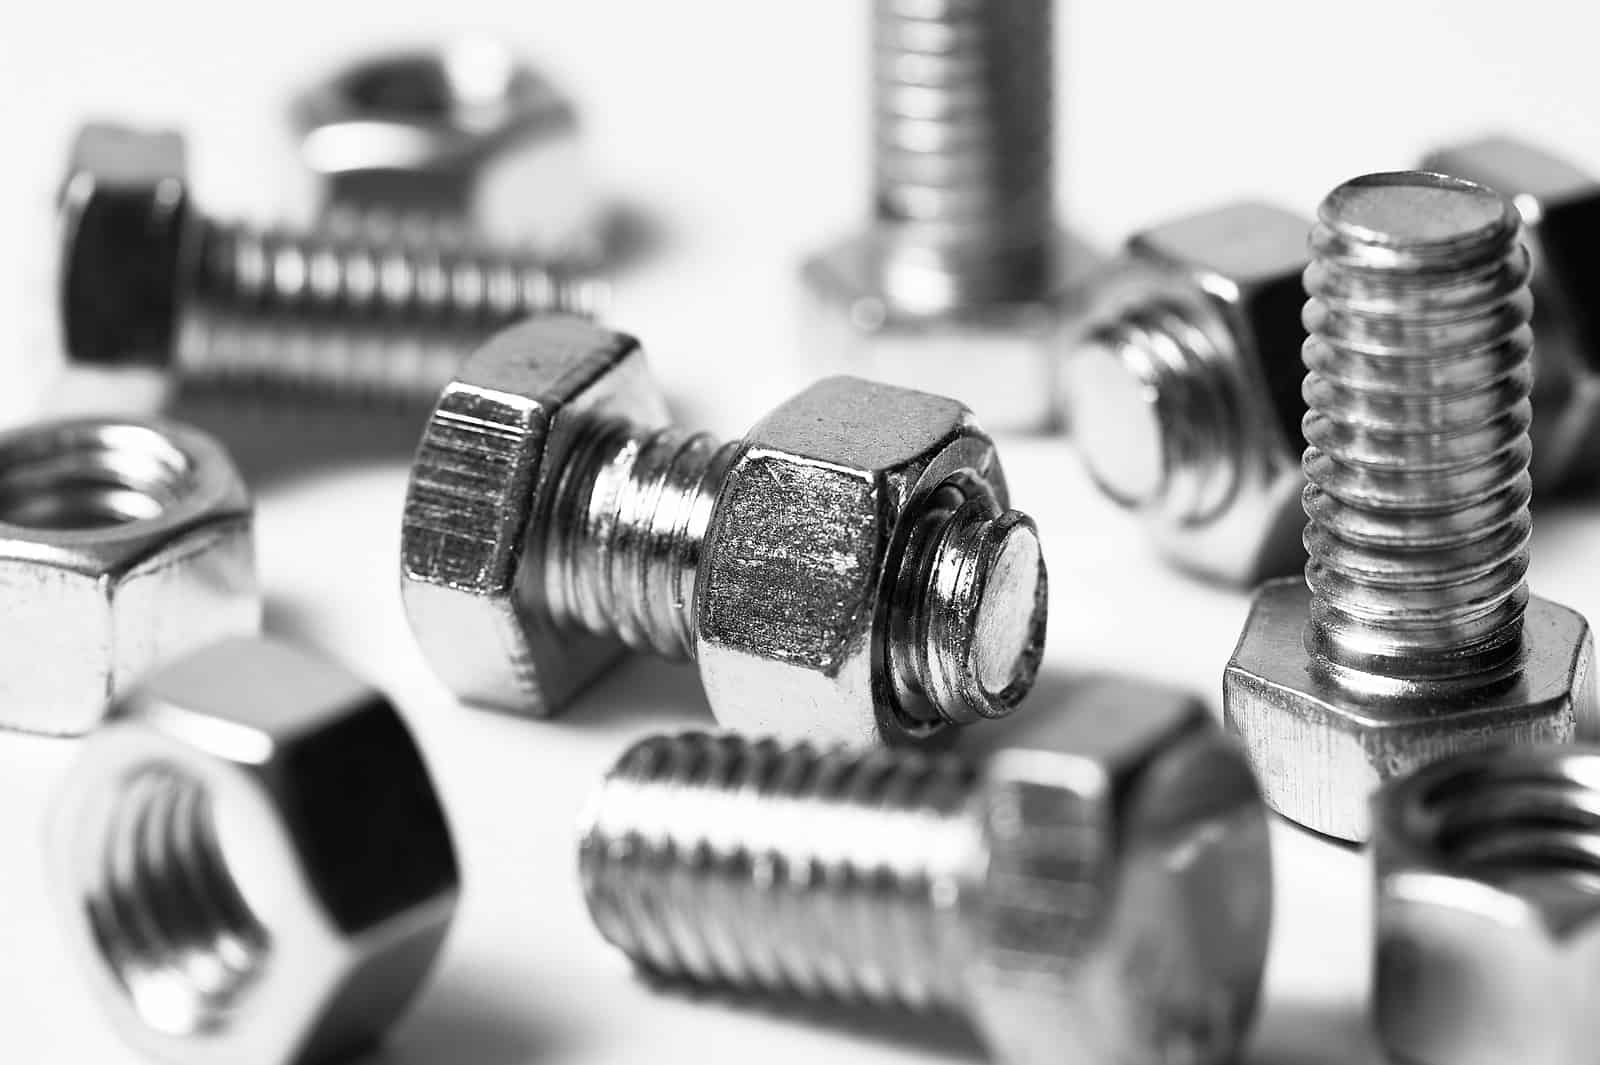 Things to Know About Air Compressor Fittings